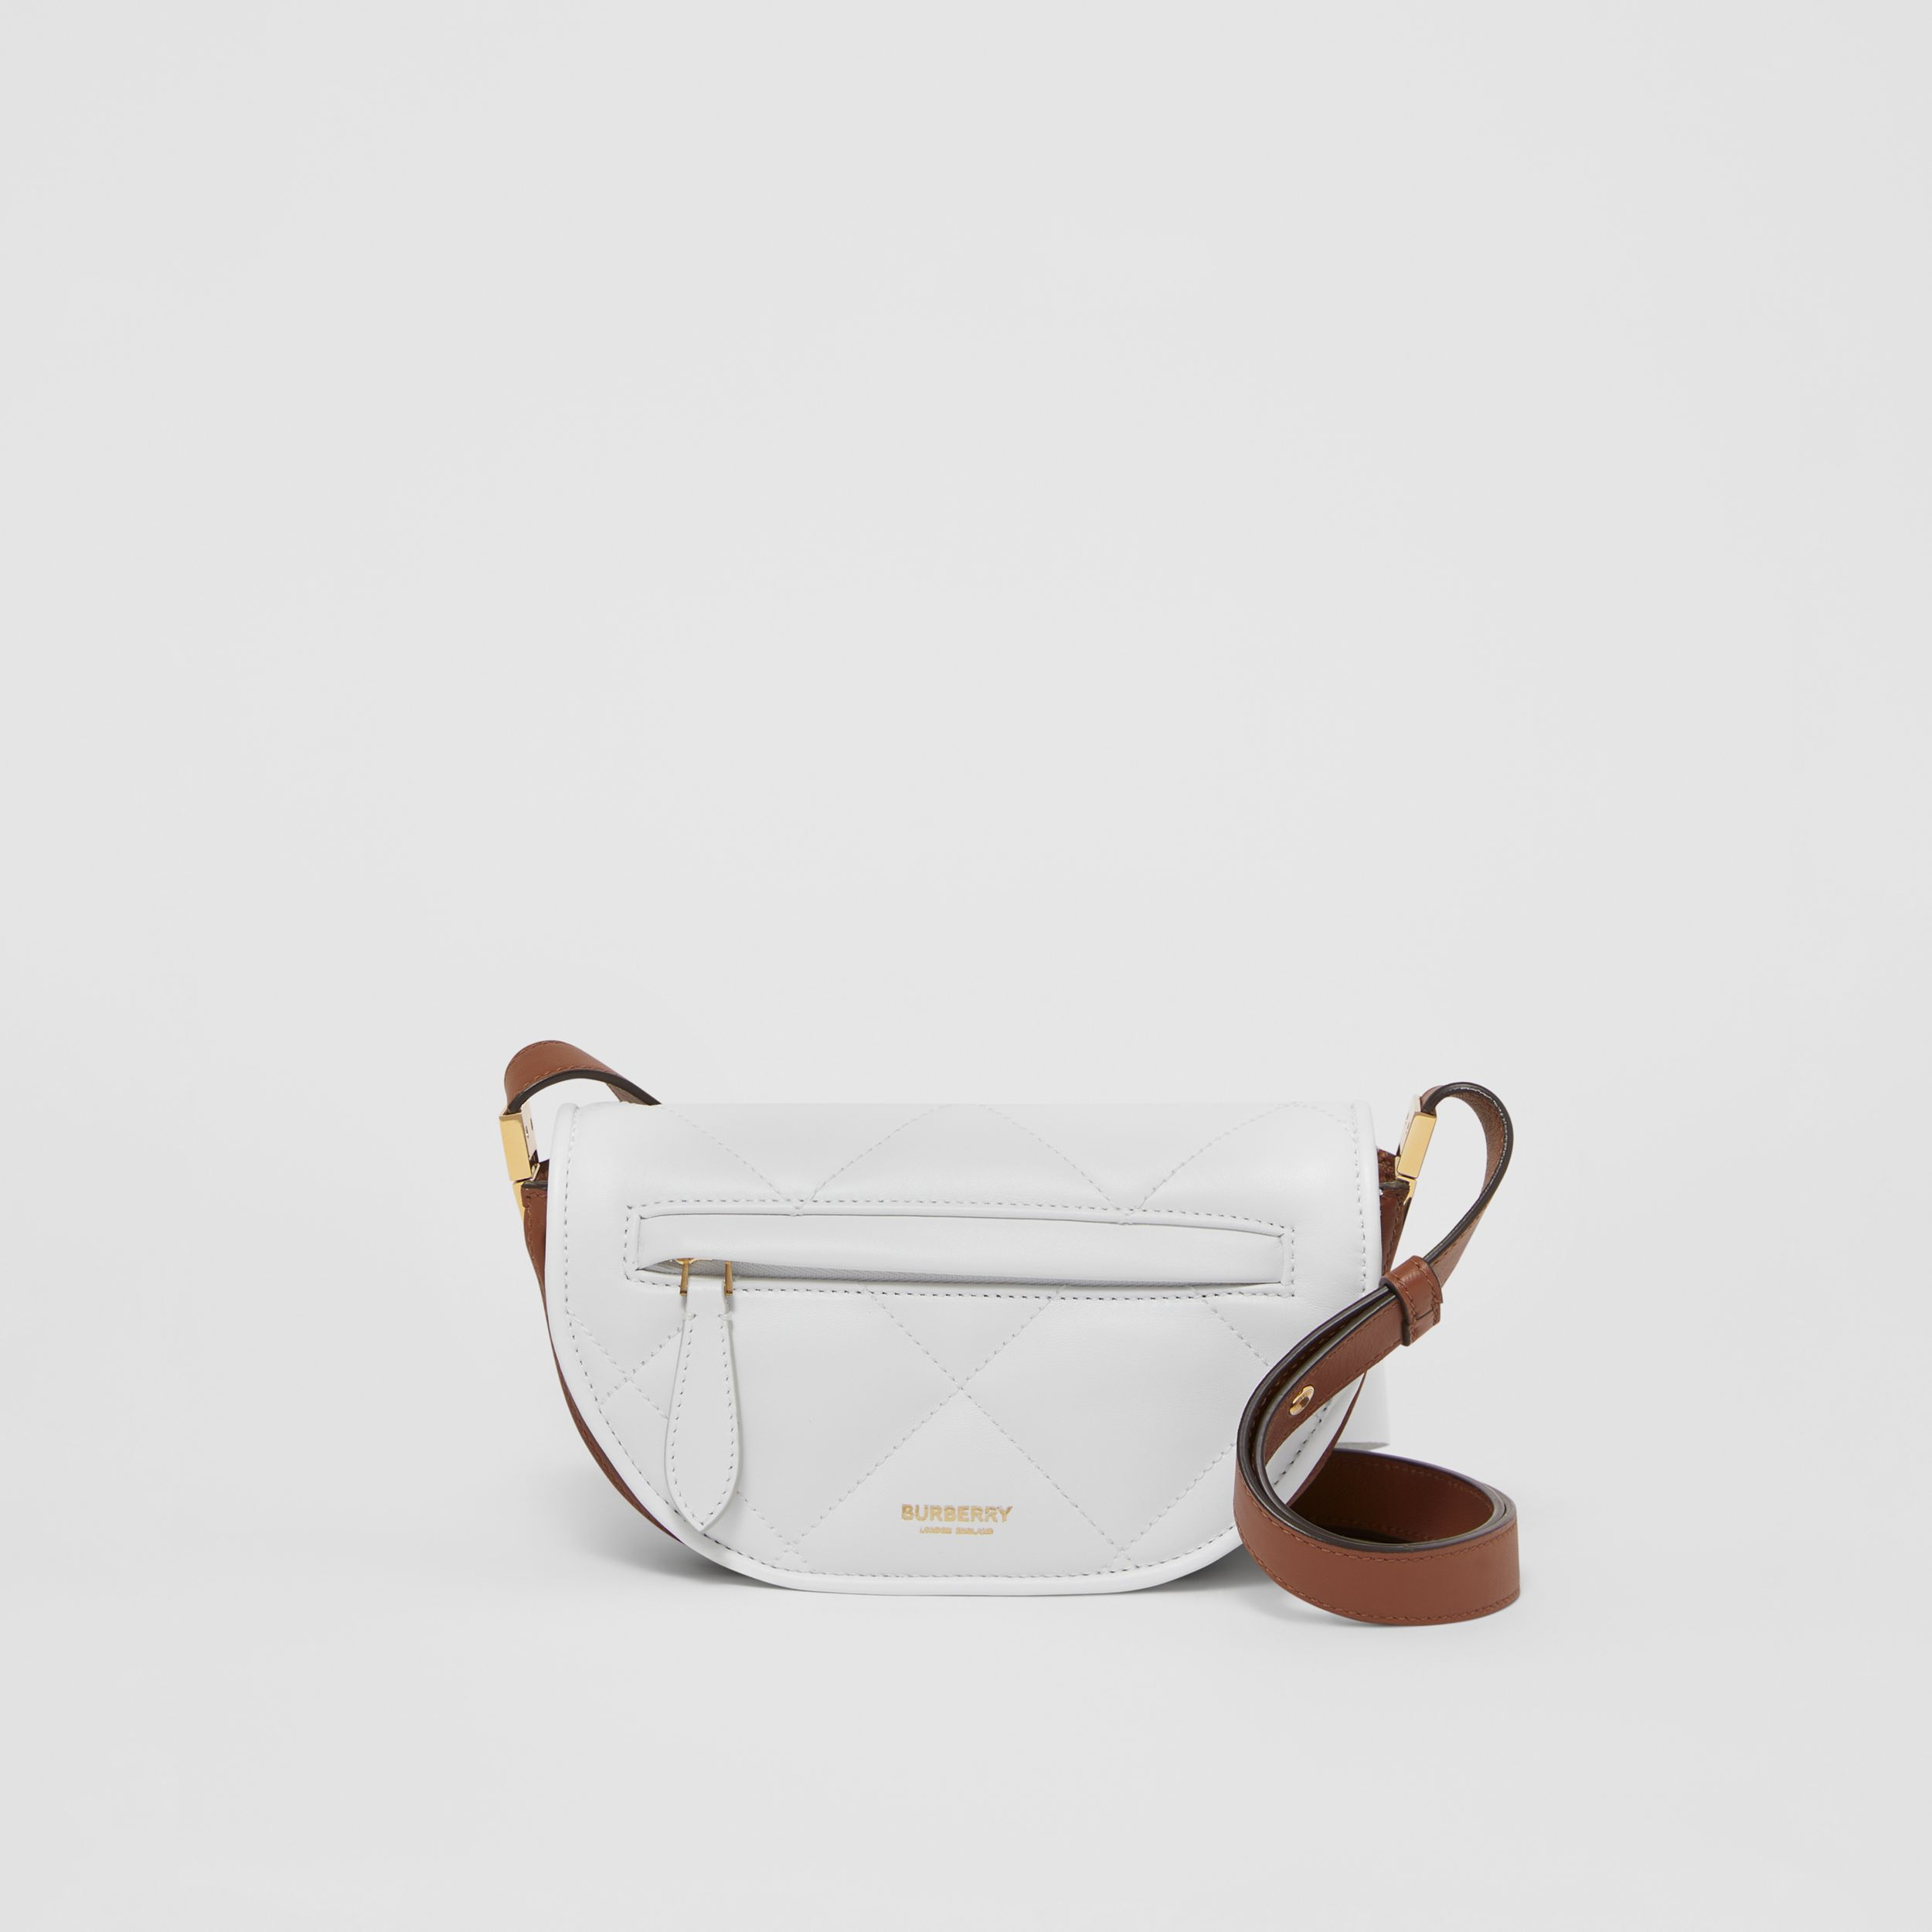 Mini Quilted Lambskin Olympia Bag in White/tan - Women | Burberry - 1